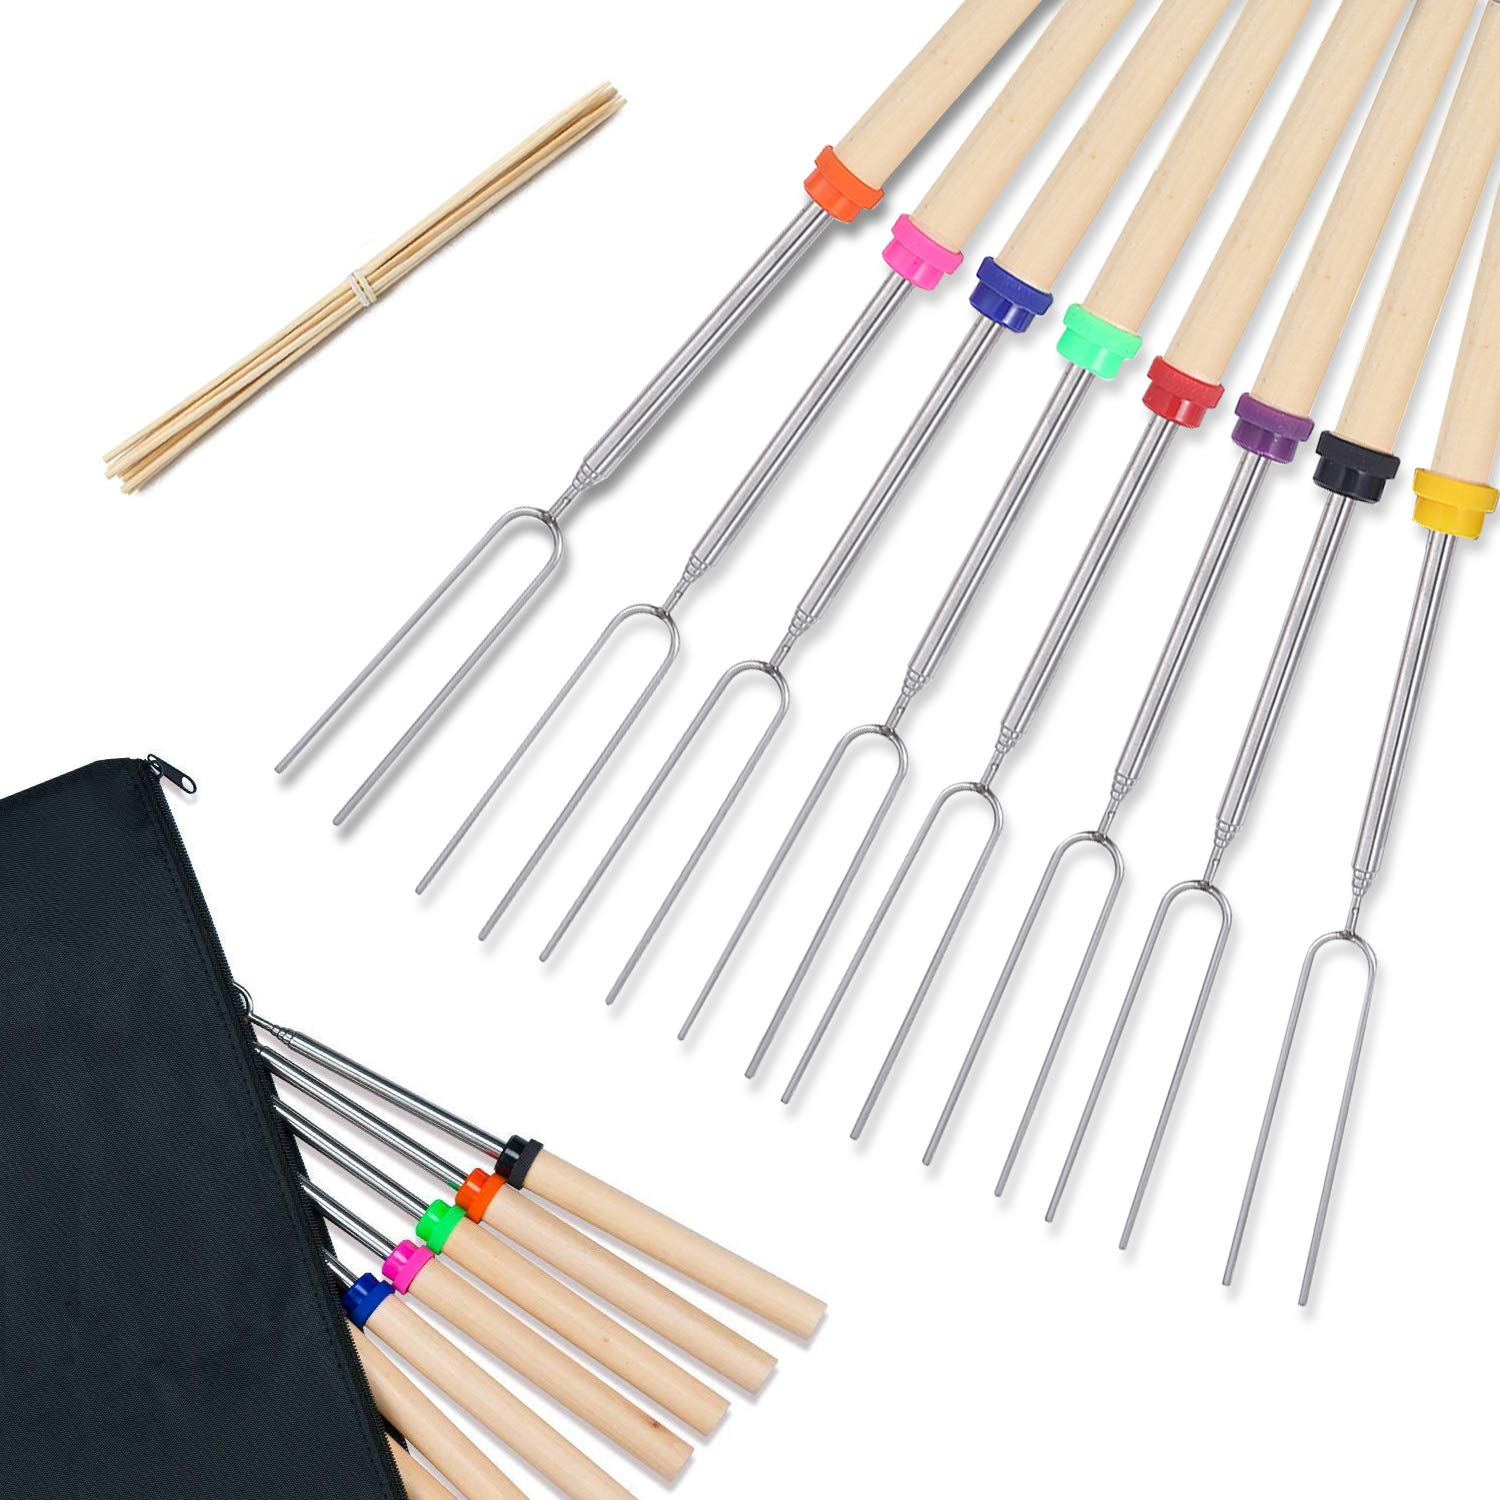 Roasting Sticks, Marshmallow Roasting Sticks, Set of 8 Barbeque BBQ Skewers with 10 Bamboo Skewers for Campfire, Firepit, and Sausage BBQ, 32 Inch (8 Colors)